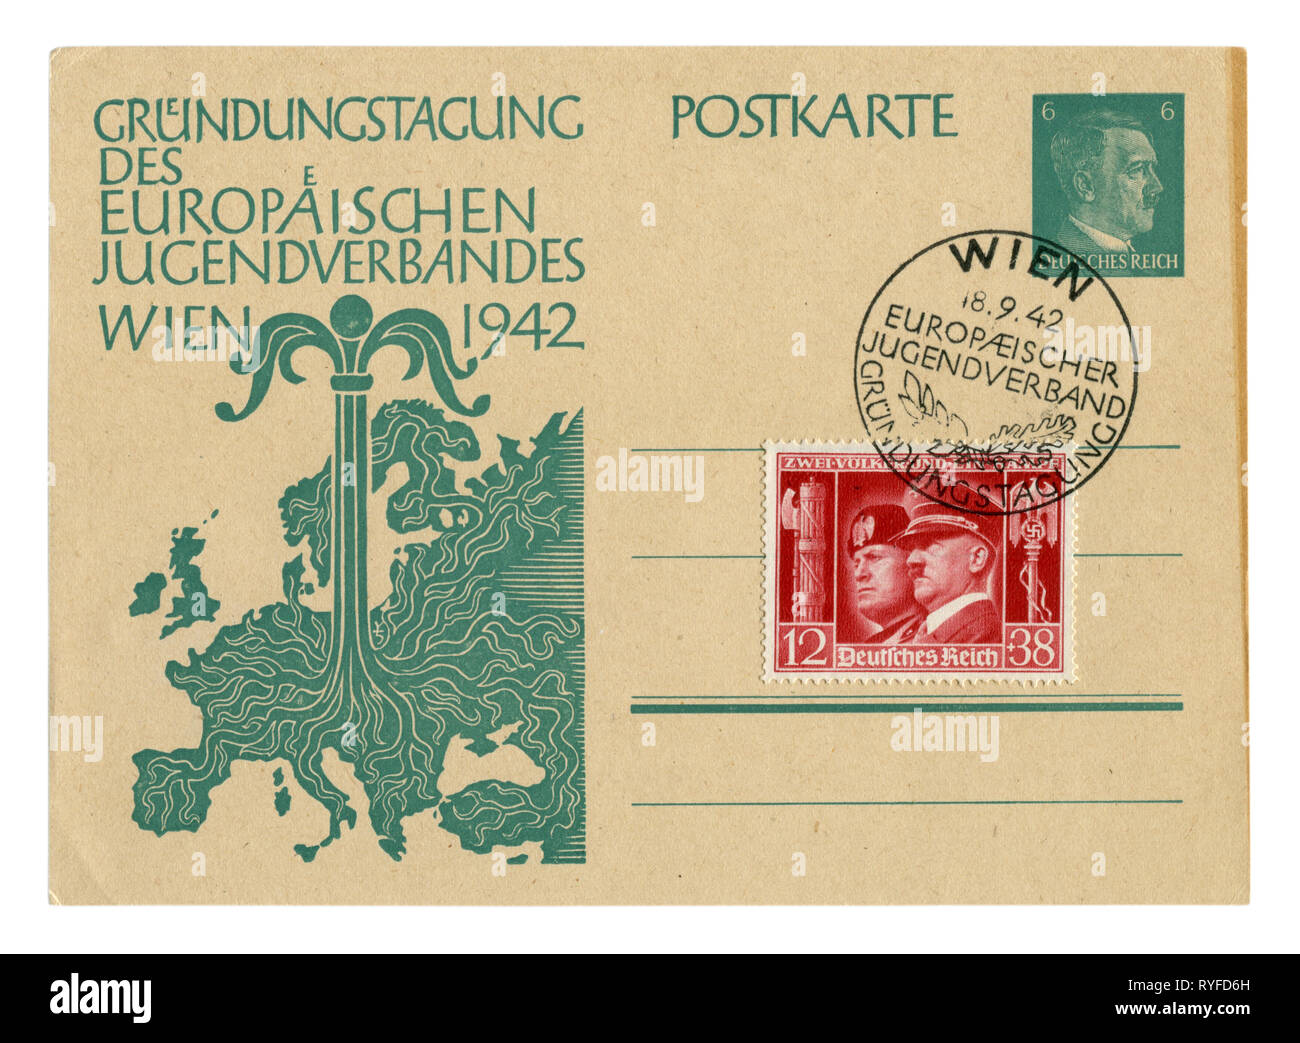 German historical postal card: Day of Foundation of the European youth organization. Young tree growing from the center of the map of Europe. Germany, - Stock Image